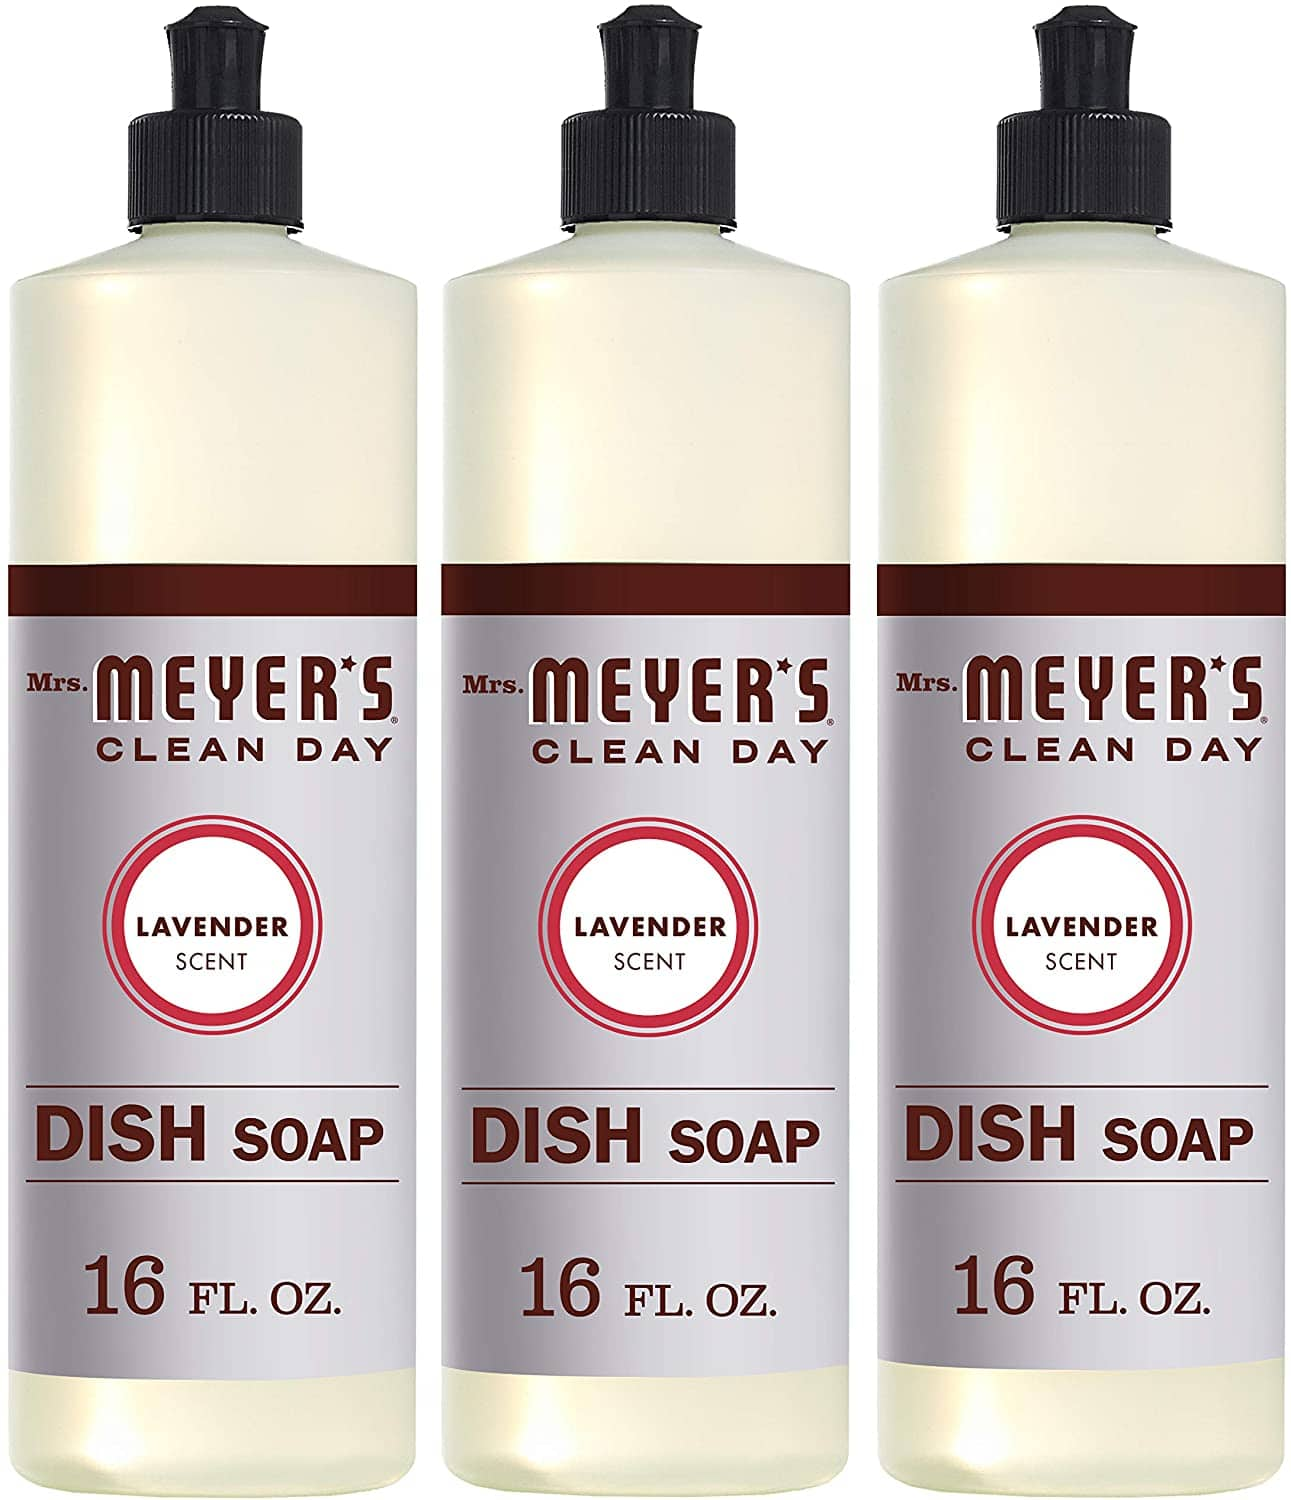 3-Count of 16-Oz Mrs. Meyers Clean Day Liquid Dish Soap (Lavender)